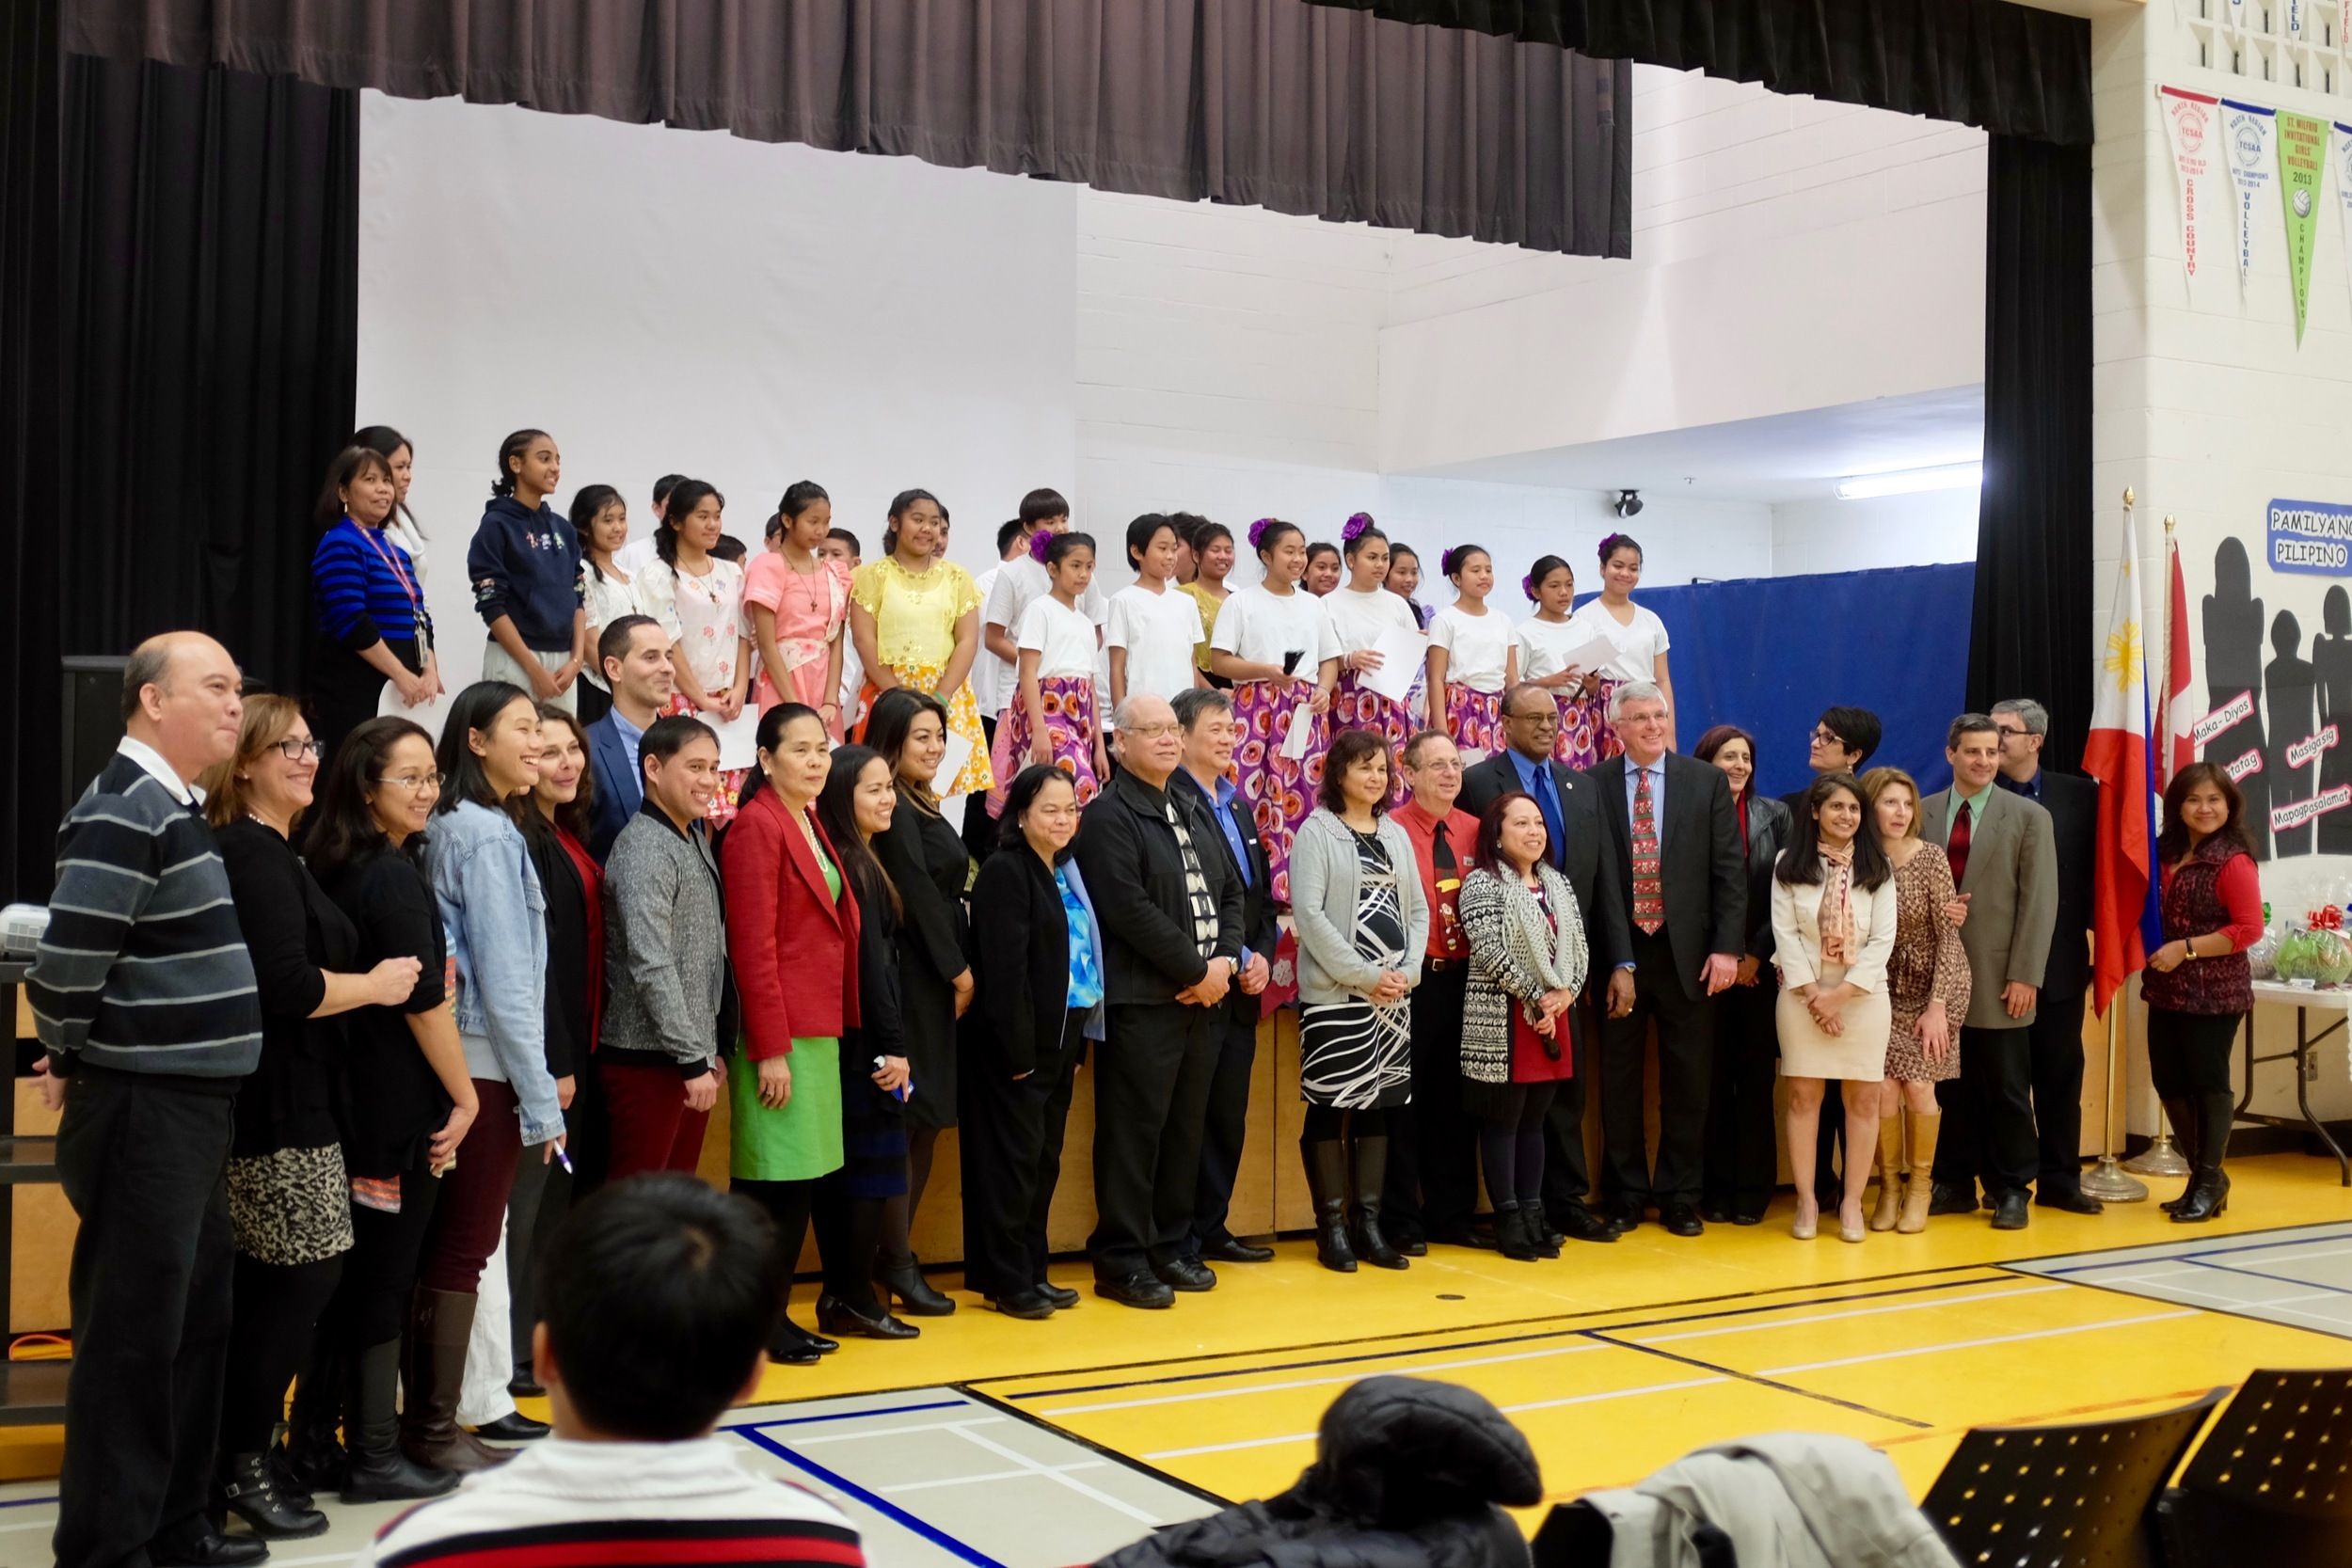 TCDSB staff with Filipino leaders and community members.